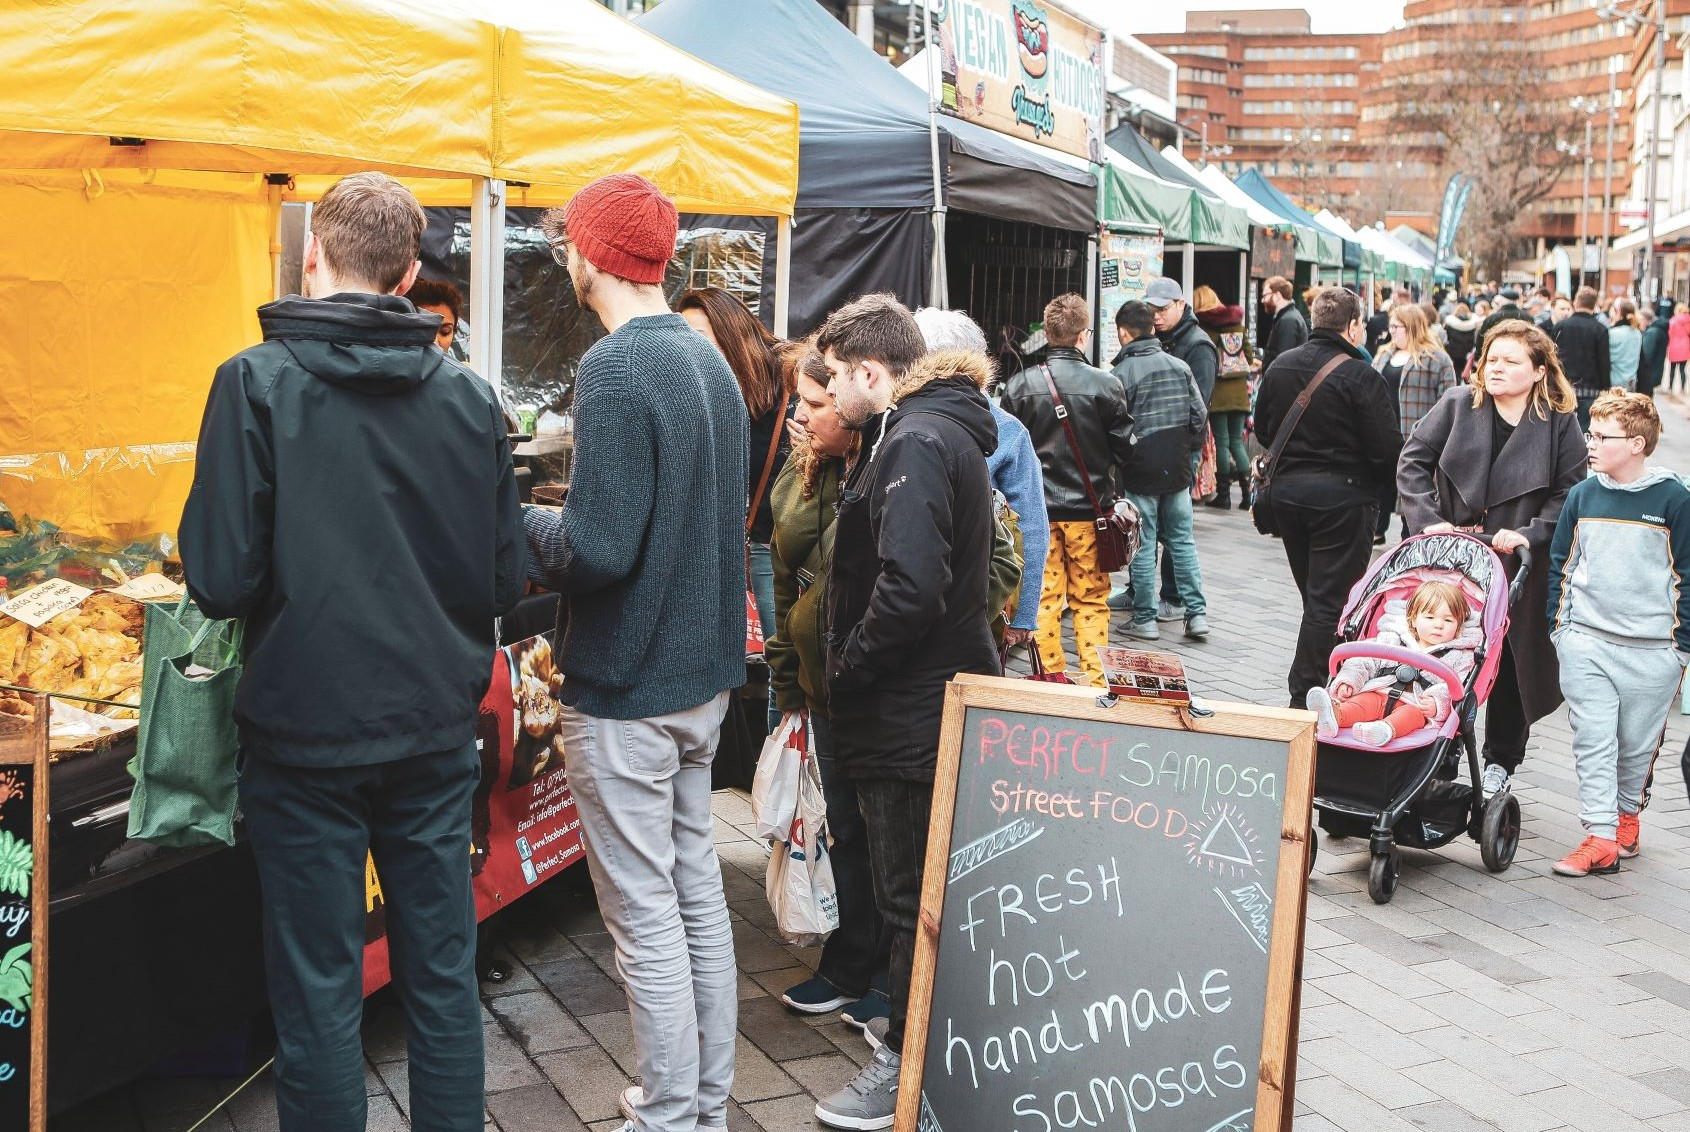 A crowd of people at the Sheffield Vegan Market. People are dressed for winter. There is a blackboard advertising samosas outside a stall.